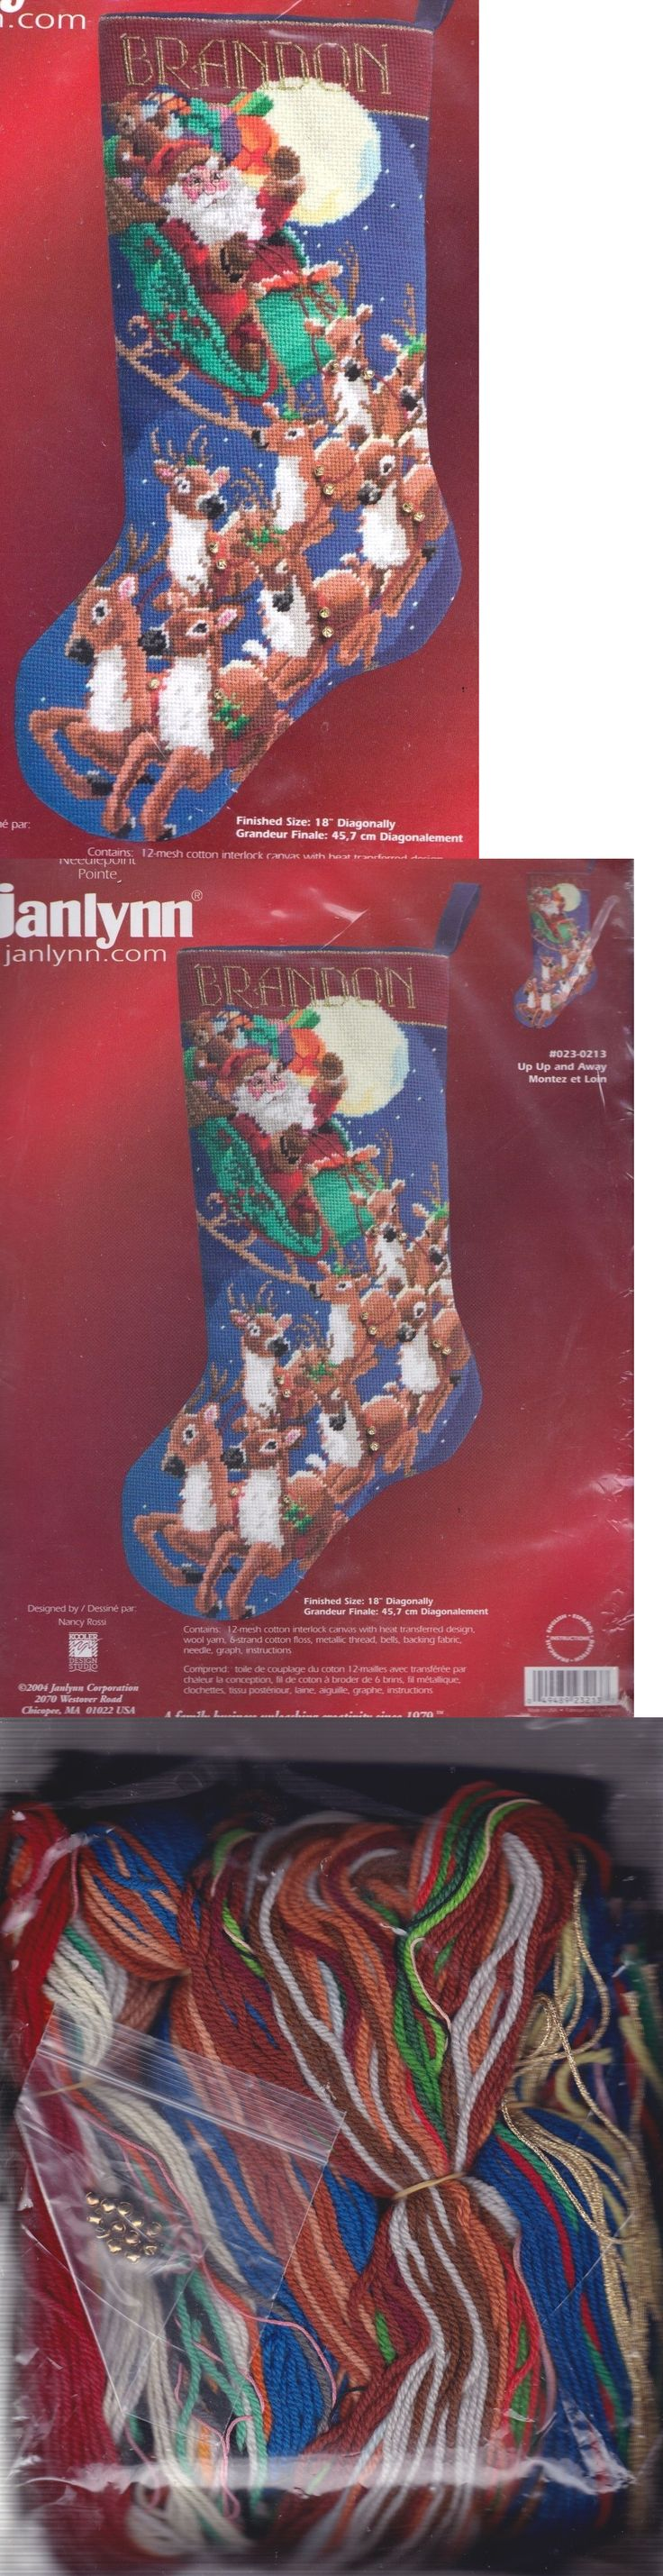 Needlepoint Kits 3109: Janlynn Up Up And Away Santa Sleigh Christmas Needlepoint Stocking Kit 023 0213 -> BUY IT NOW ONLY: $178.95 on eBay!